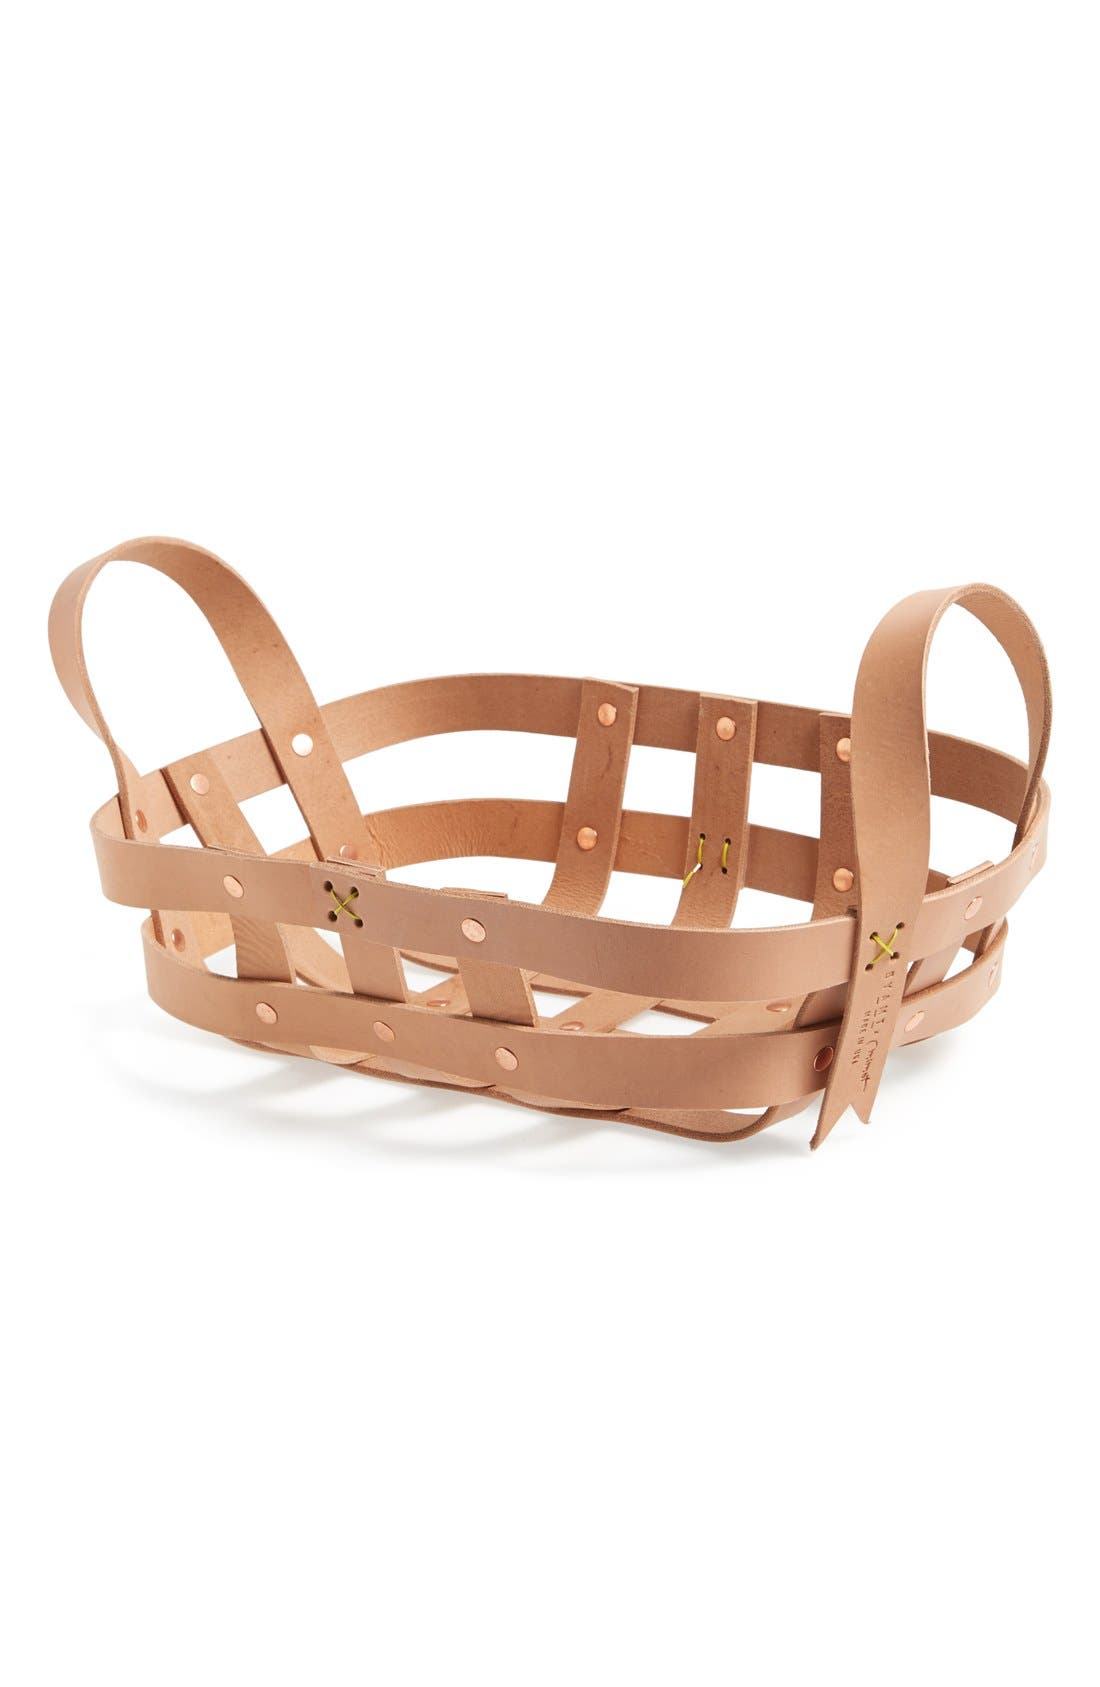 Alternate Image 1 Selected - byAMT Small Leather Strap Basket